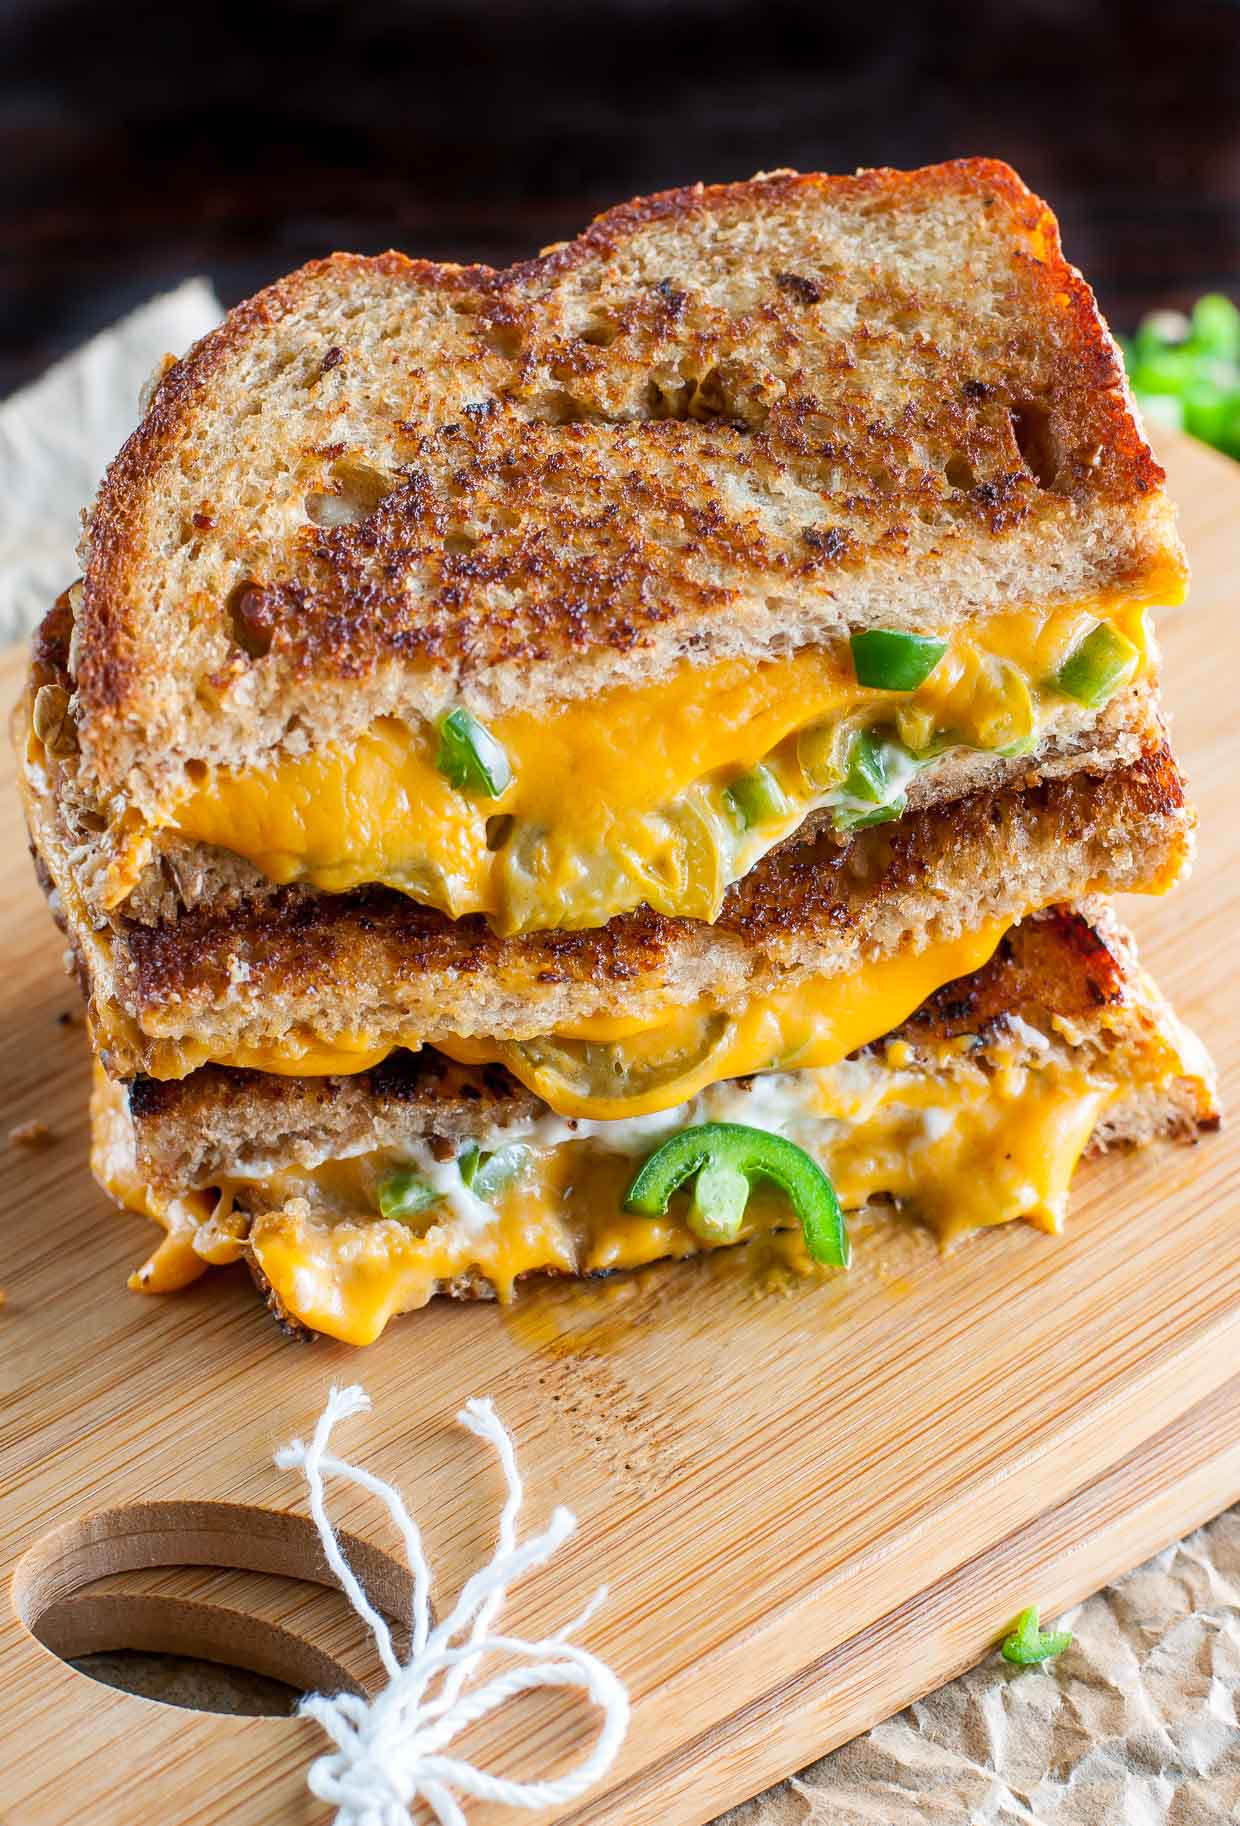 Sandwiches with cheese - recipes, cooking features and recommendations 8